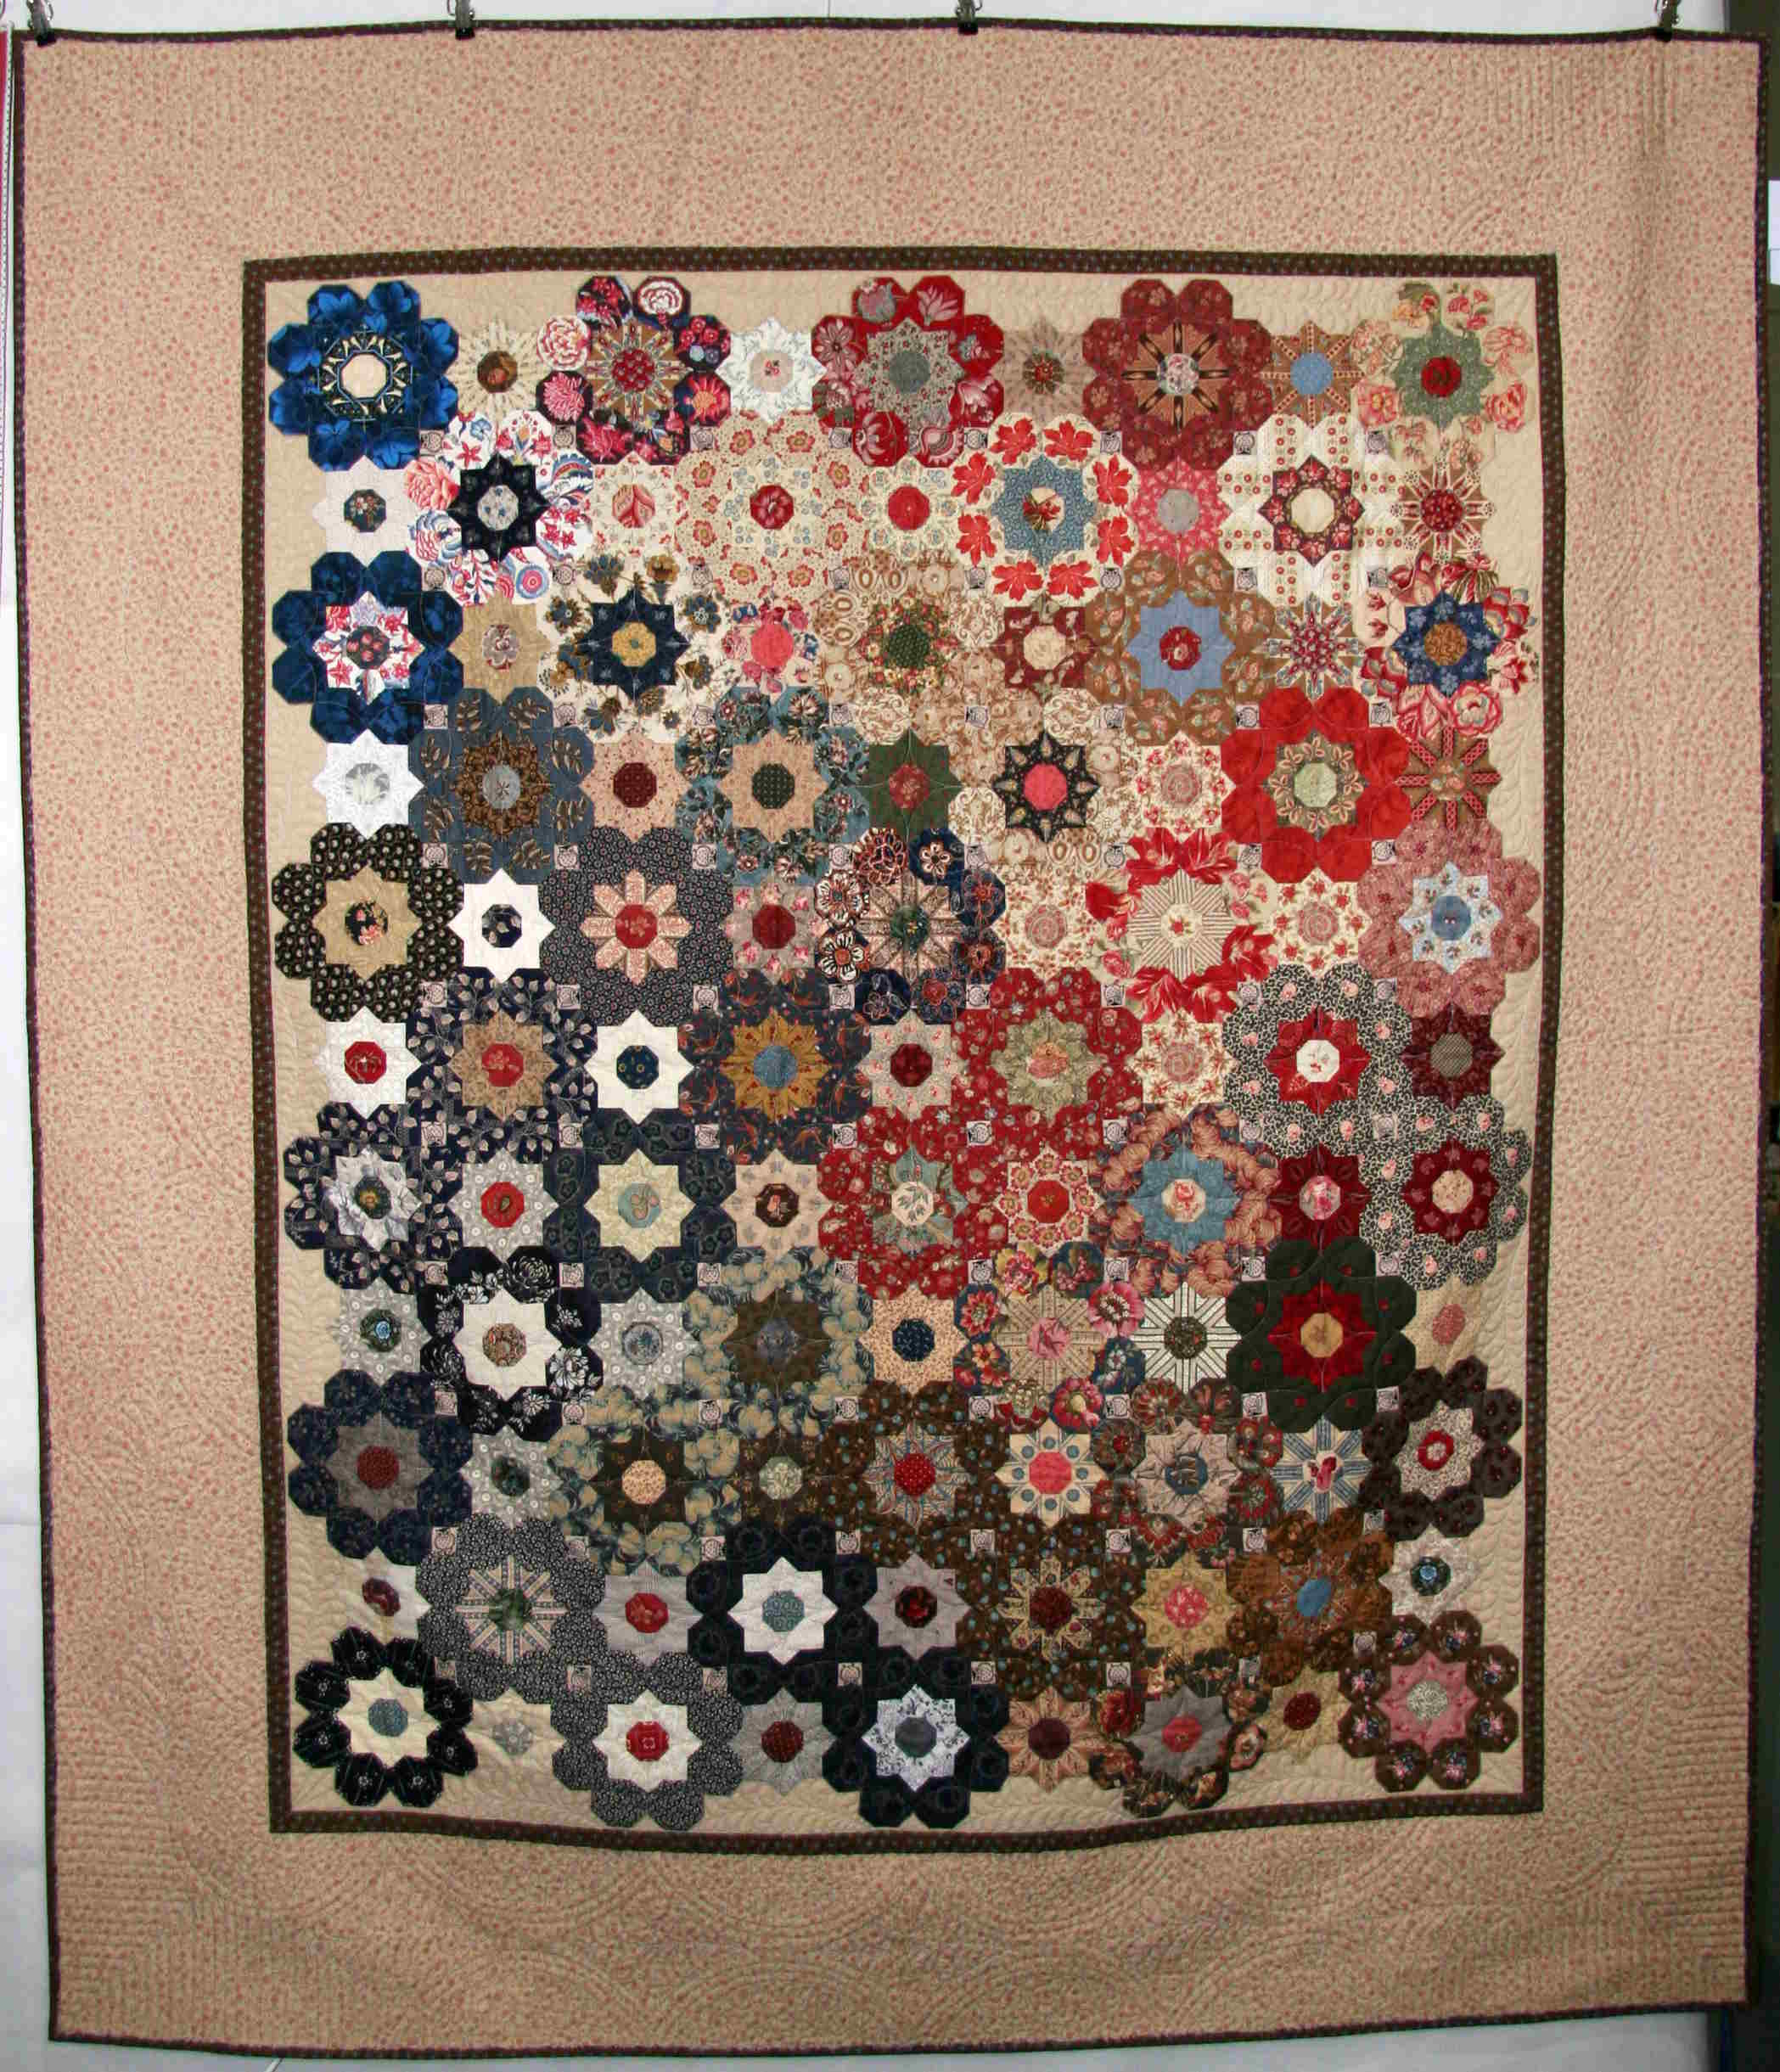 Gloria's Flower, PW Magazin 01-2015, Our Quilting no. 1